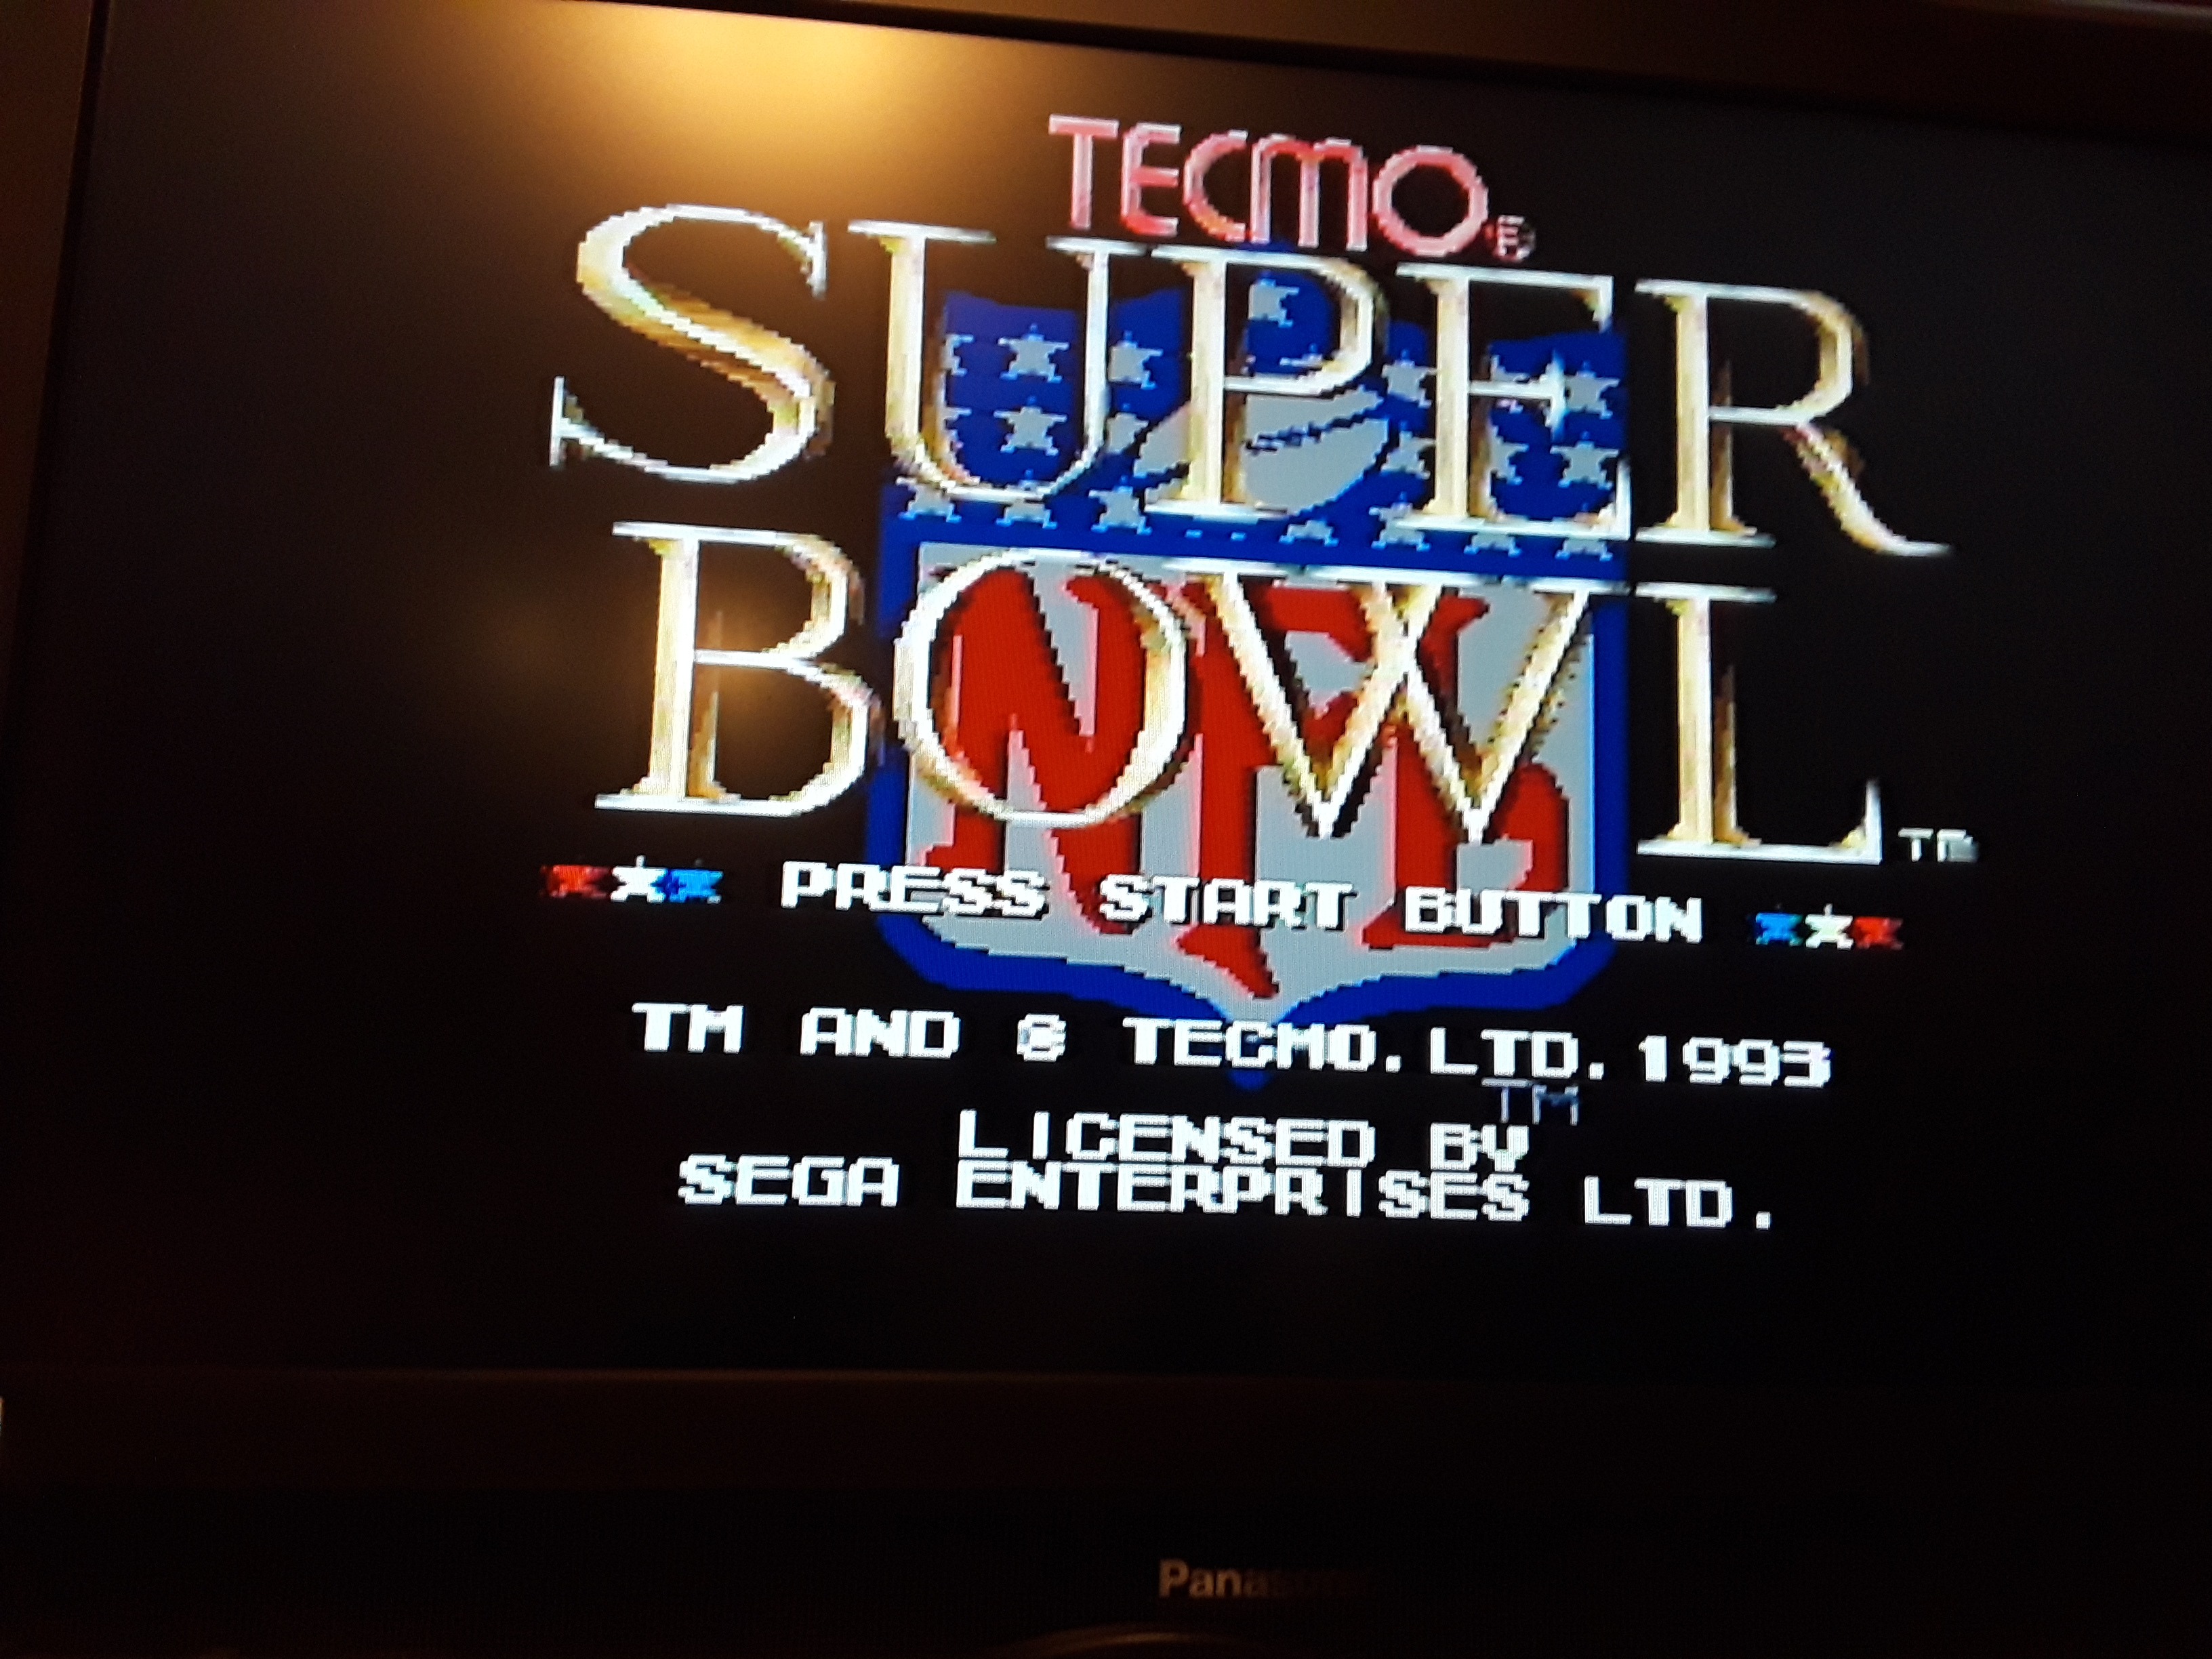 Tecmo Super Bowl [Most Receptions] [Preseason Game] 6 points